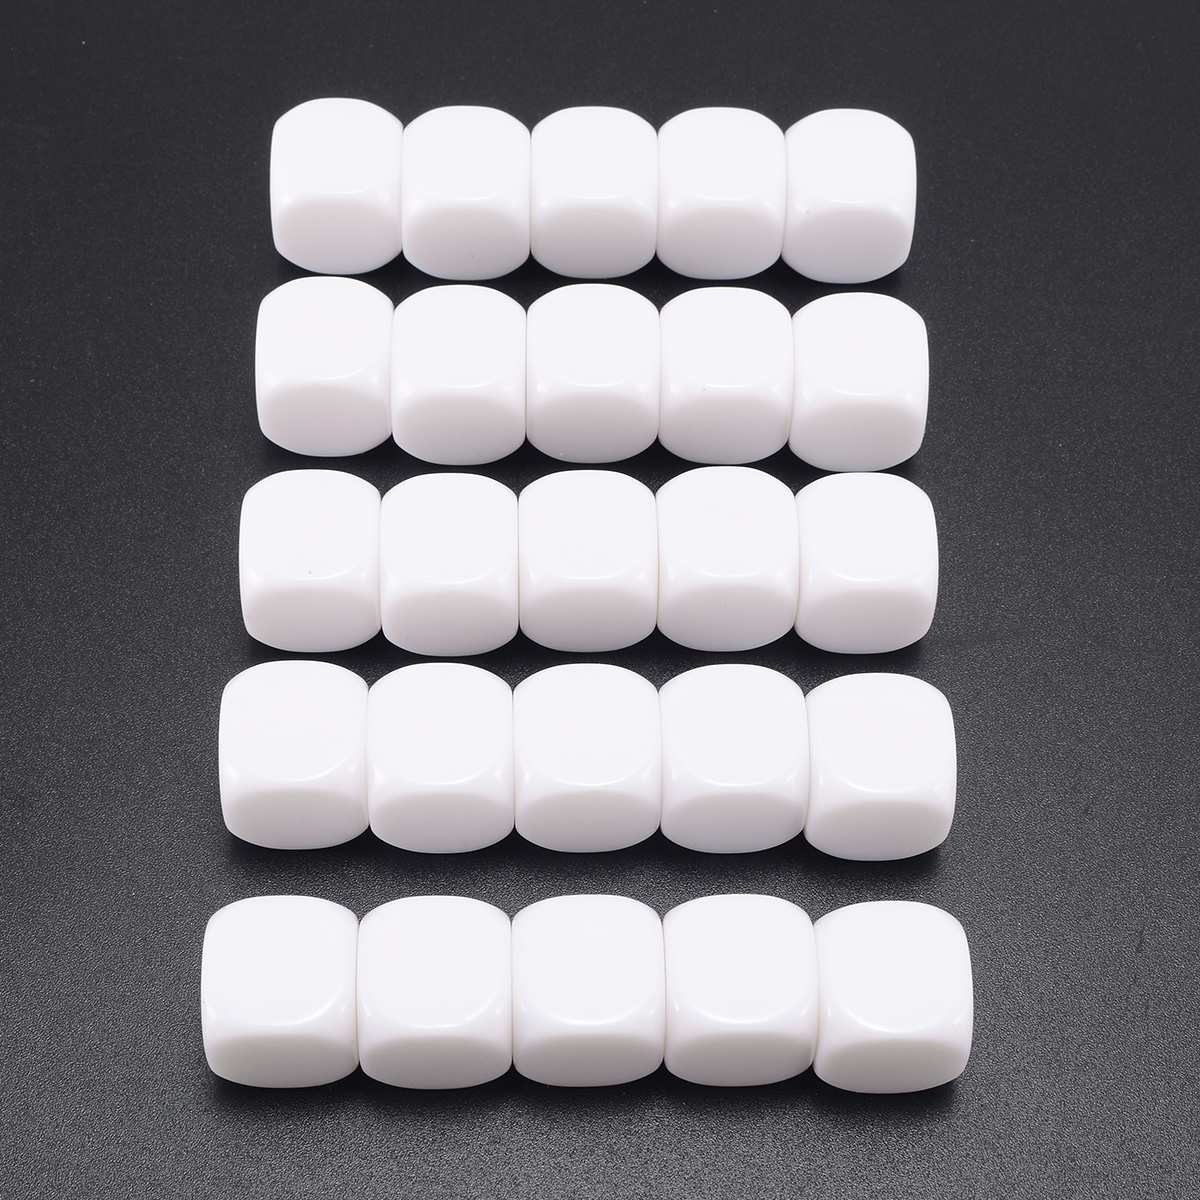 Hot Sale 25pcs Standard Size Blank Dice D6 Six Sided Acrylic RPG Gaming Dice 16mm White For Boardgame Playing Game Accessories